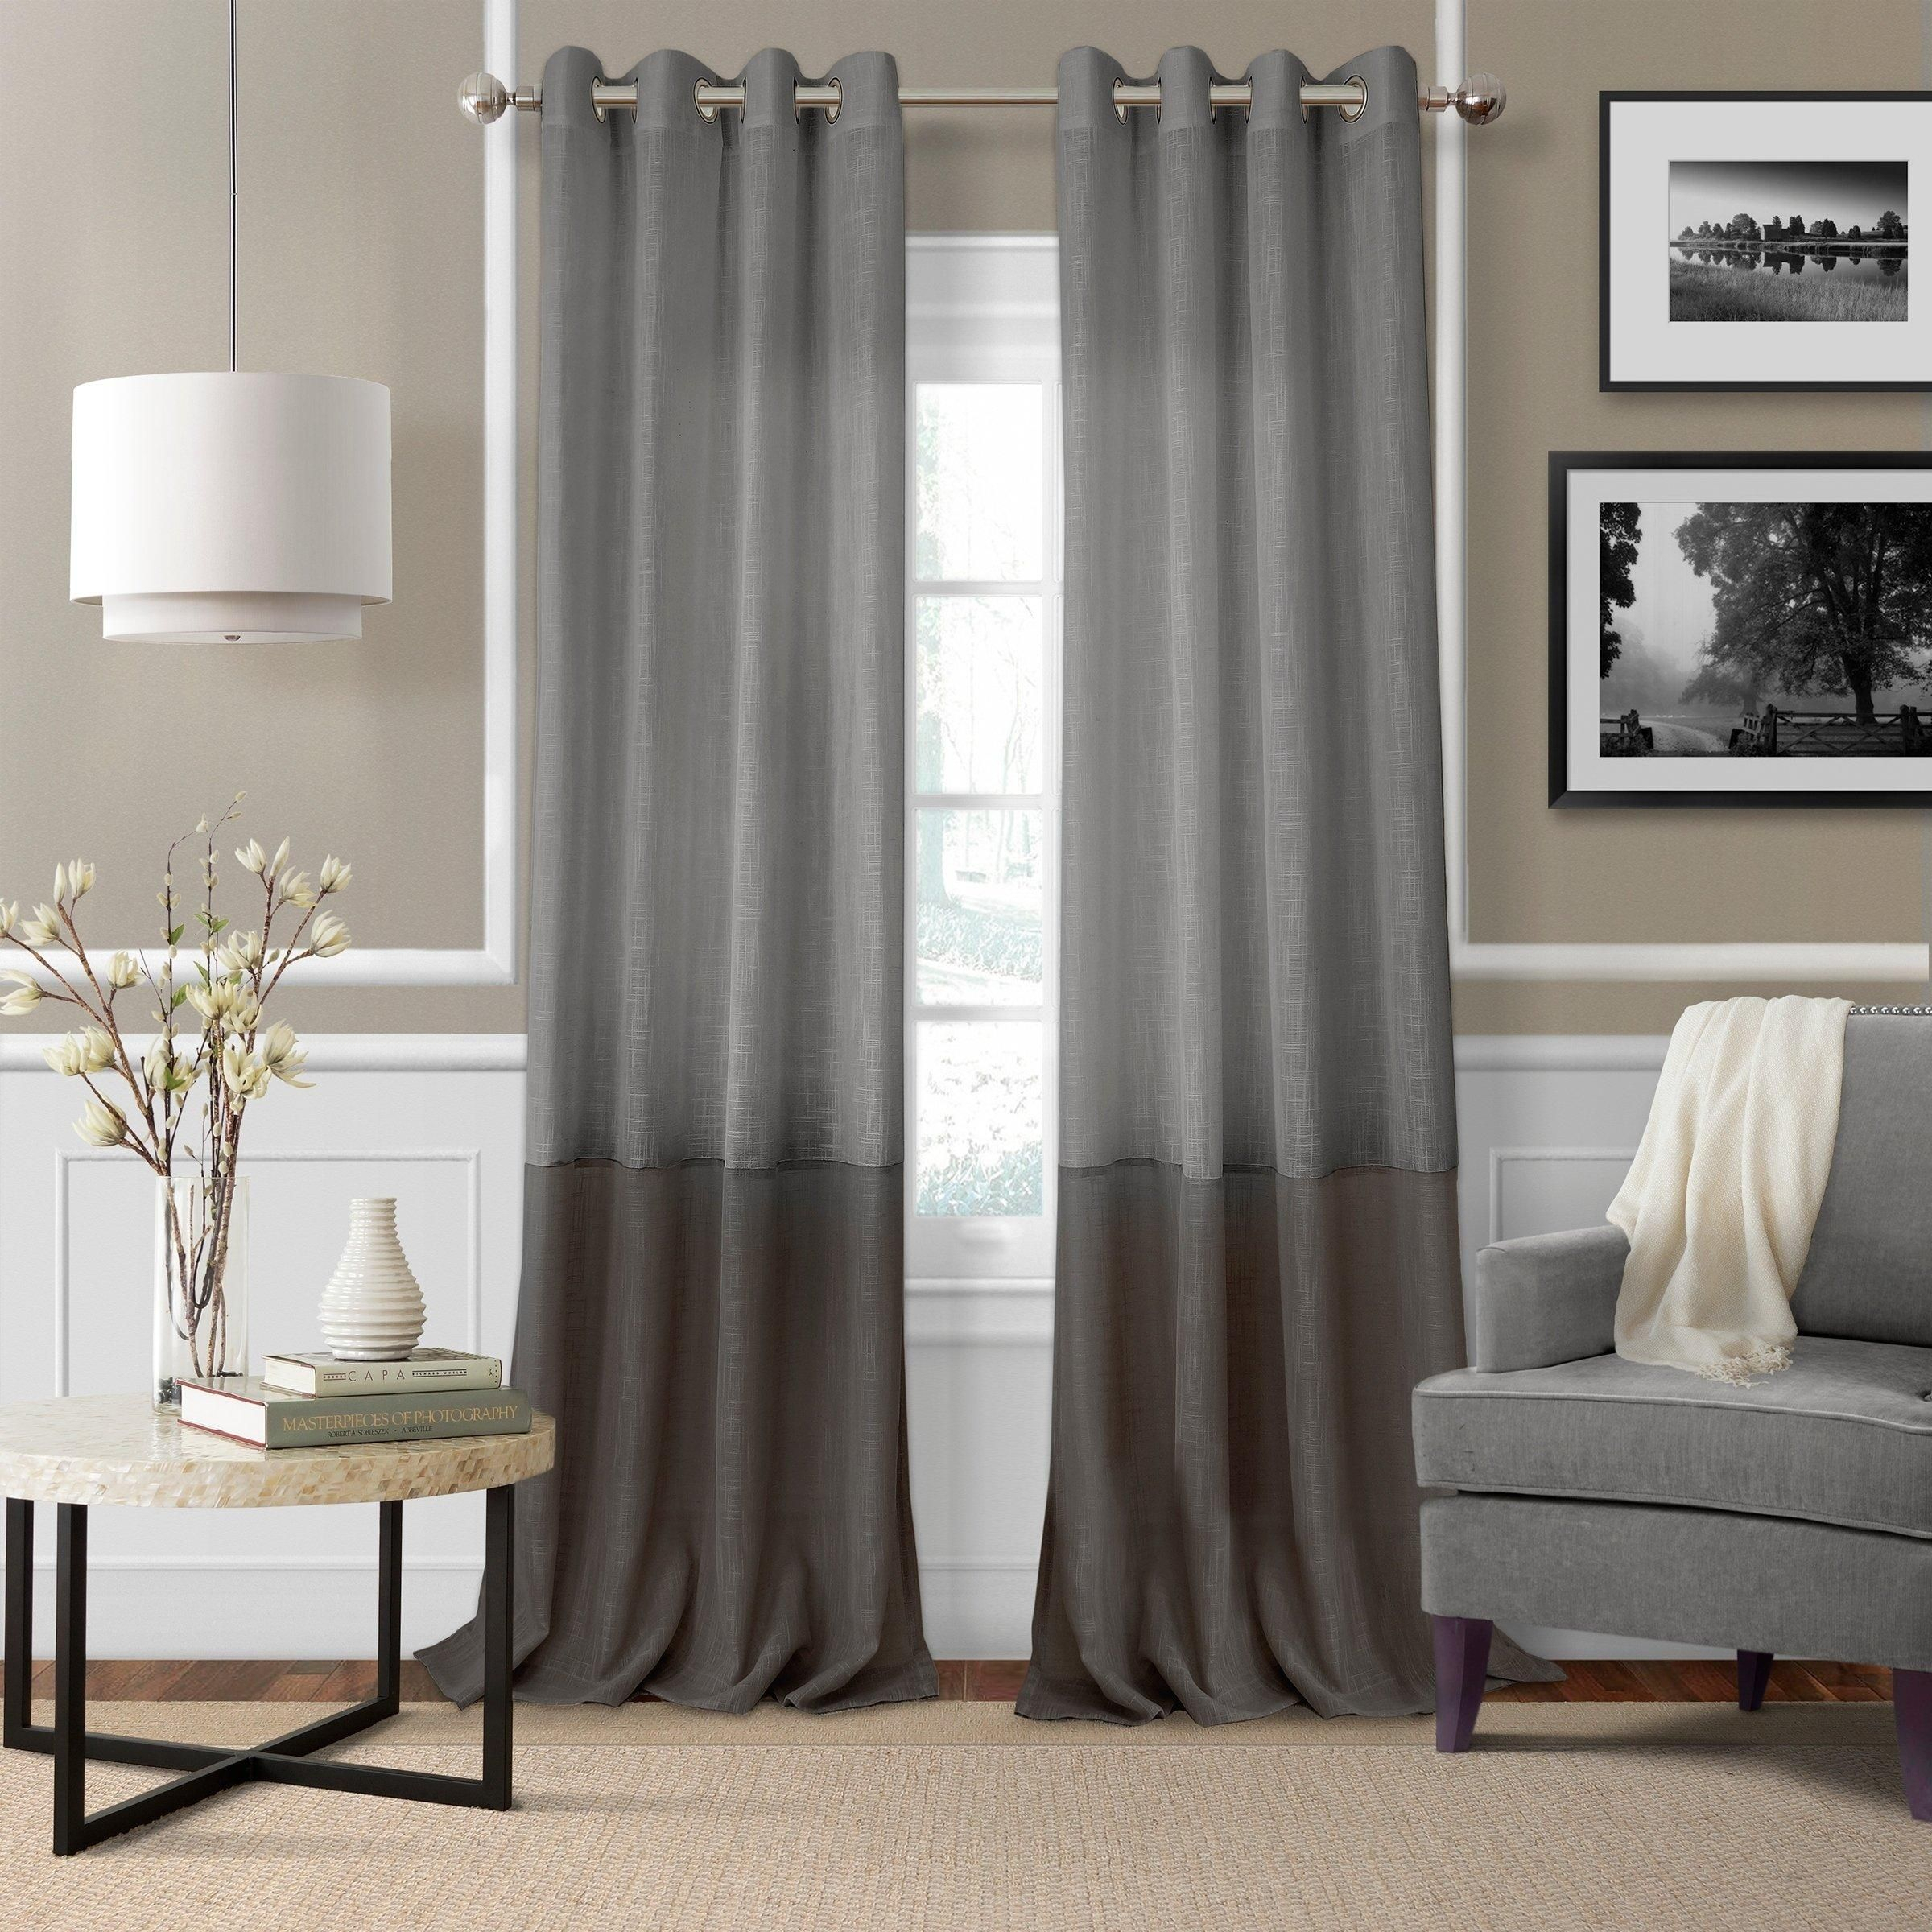 Shop Elrene Coupons & Deals With Cash Back   Rakuten Inside Elrene Versailles Pleated Blackout Curtain Panels (View 18 of 20)